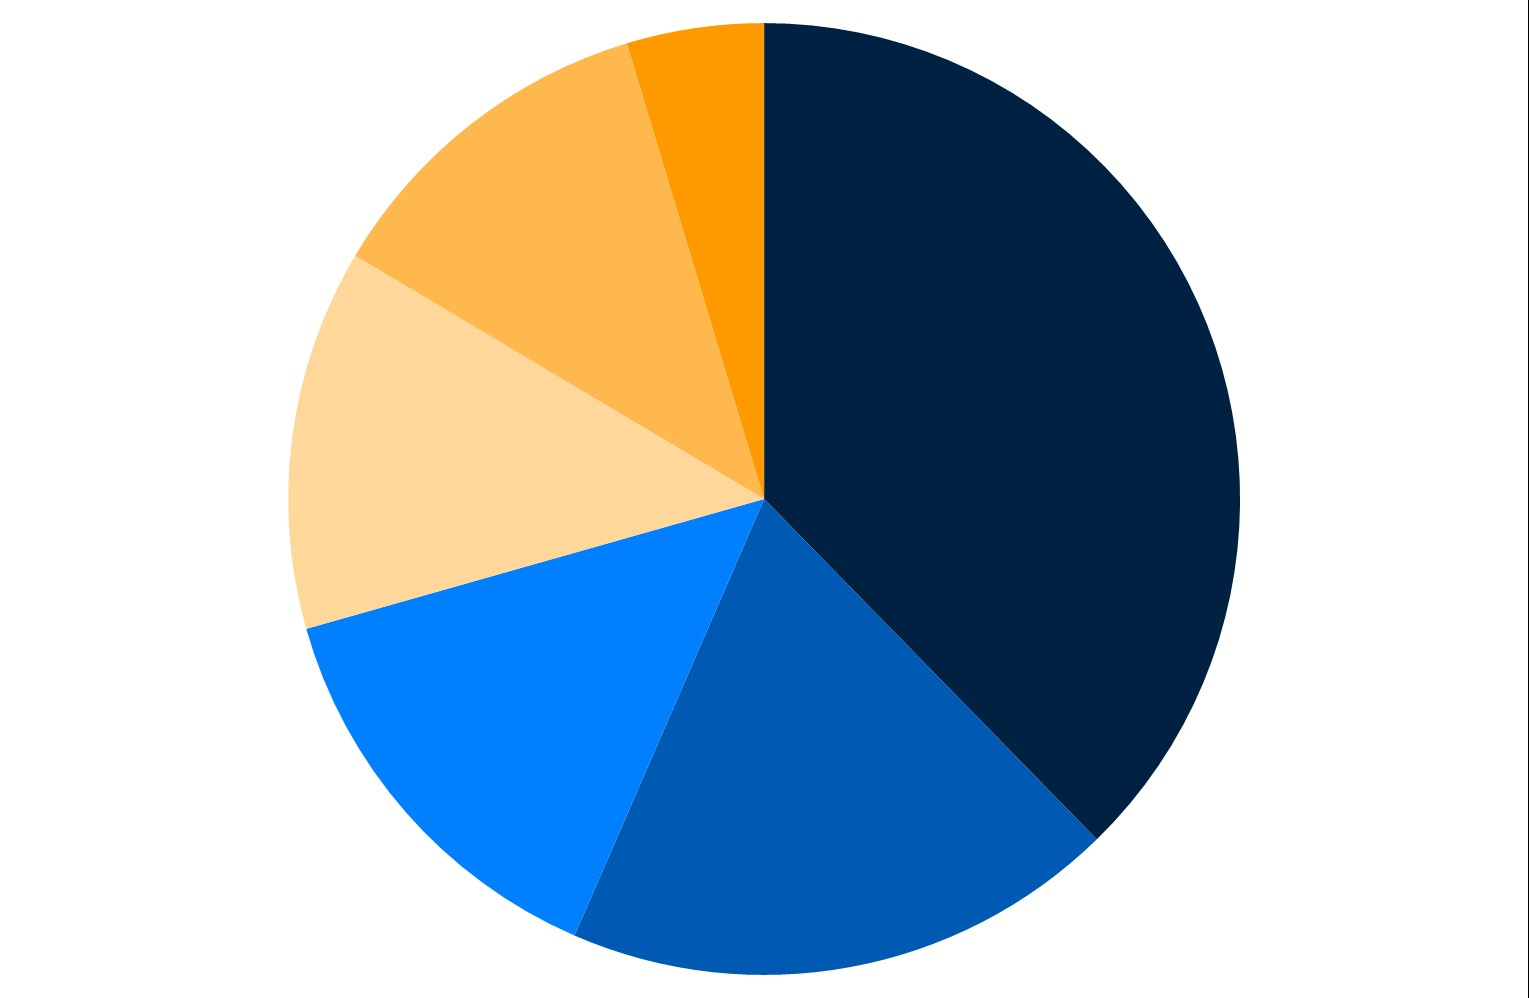 Custodian pie chart